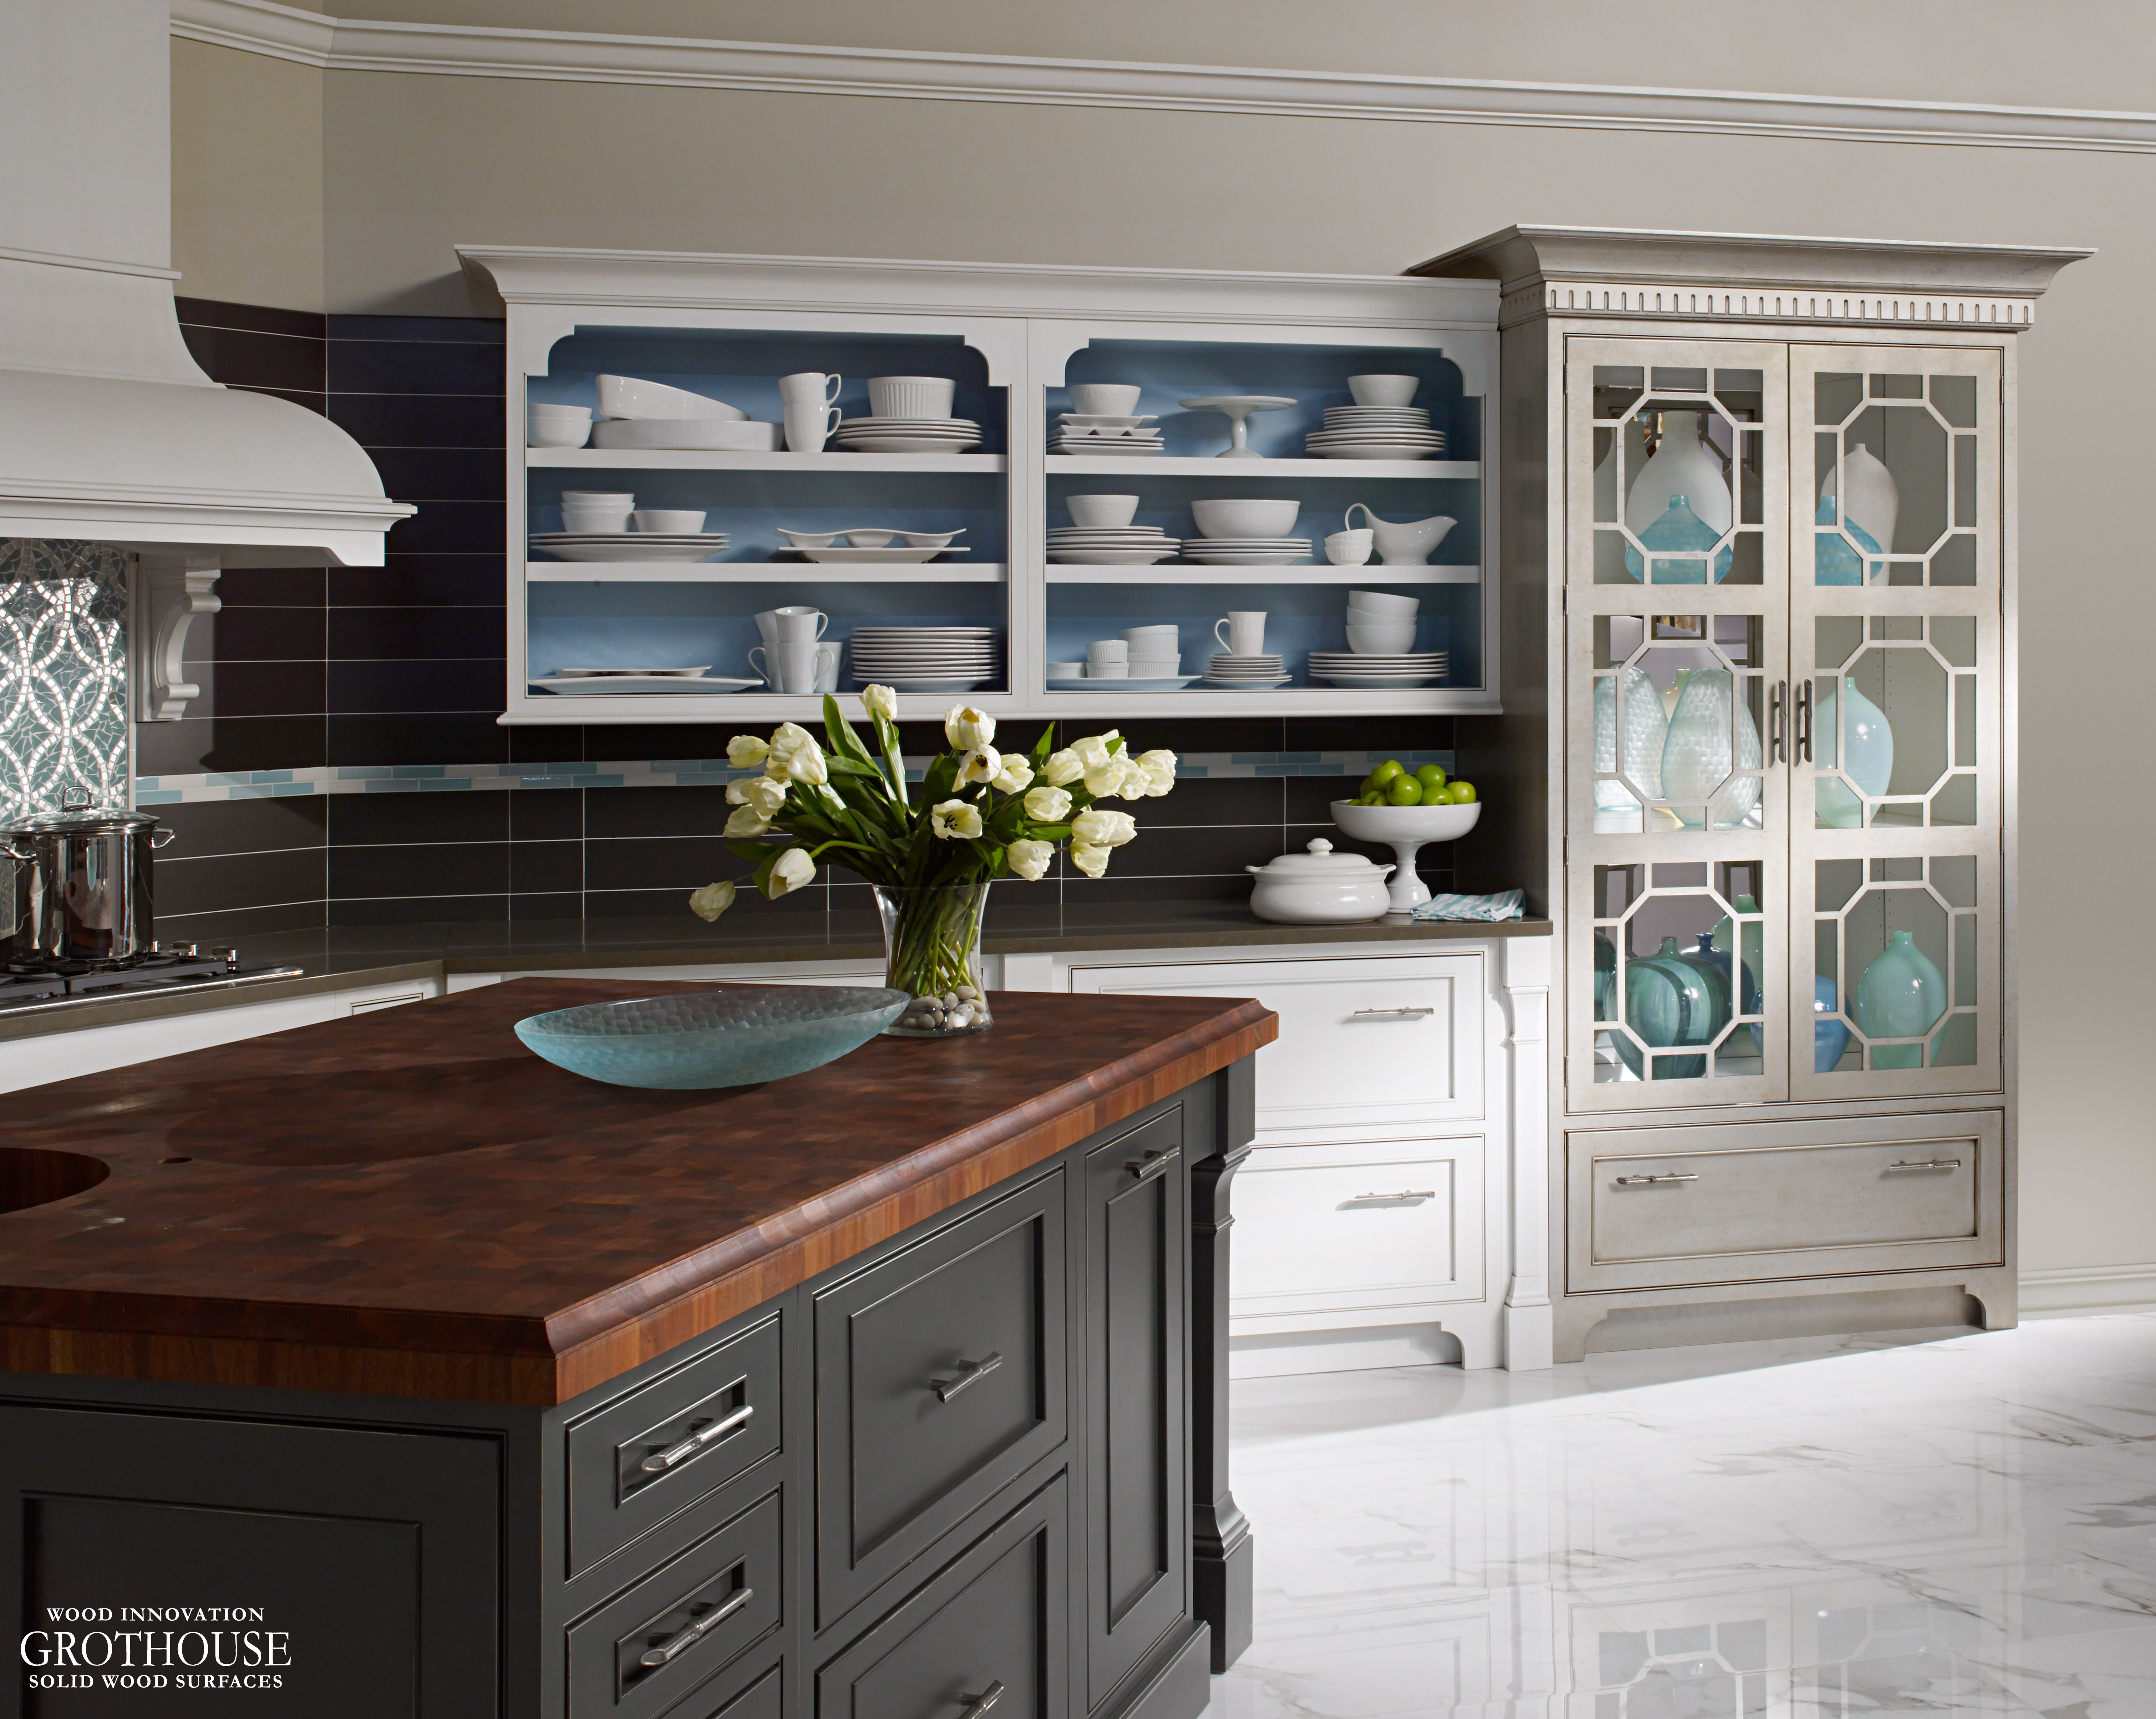 butcher block kitchen countertops pros and cons butcher block kitchen countertops Butcher Block Pros And Cons By Grothouse Blog